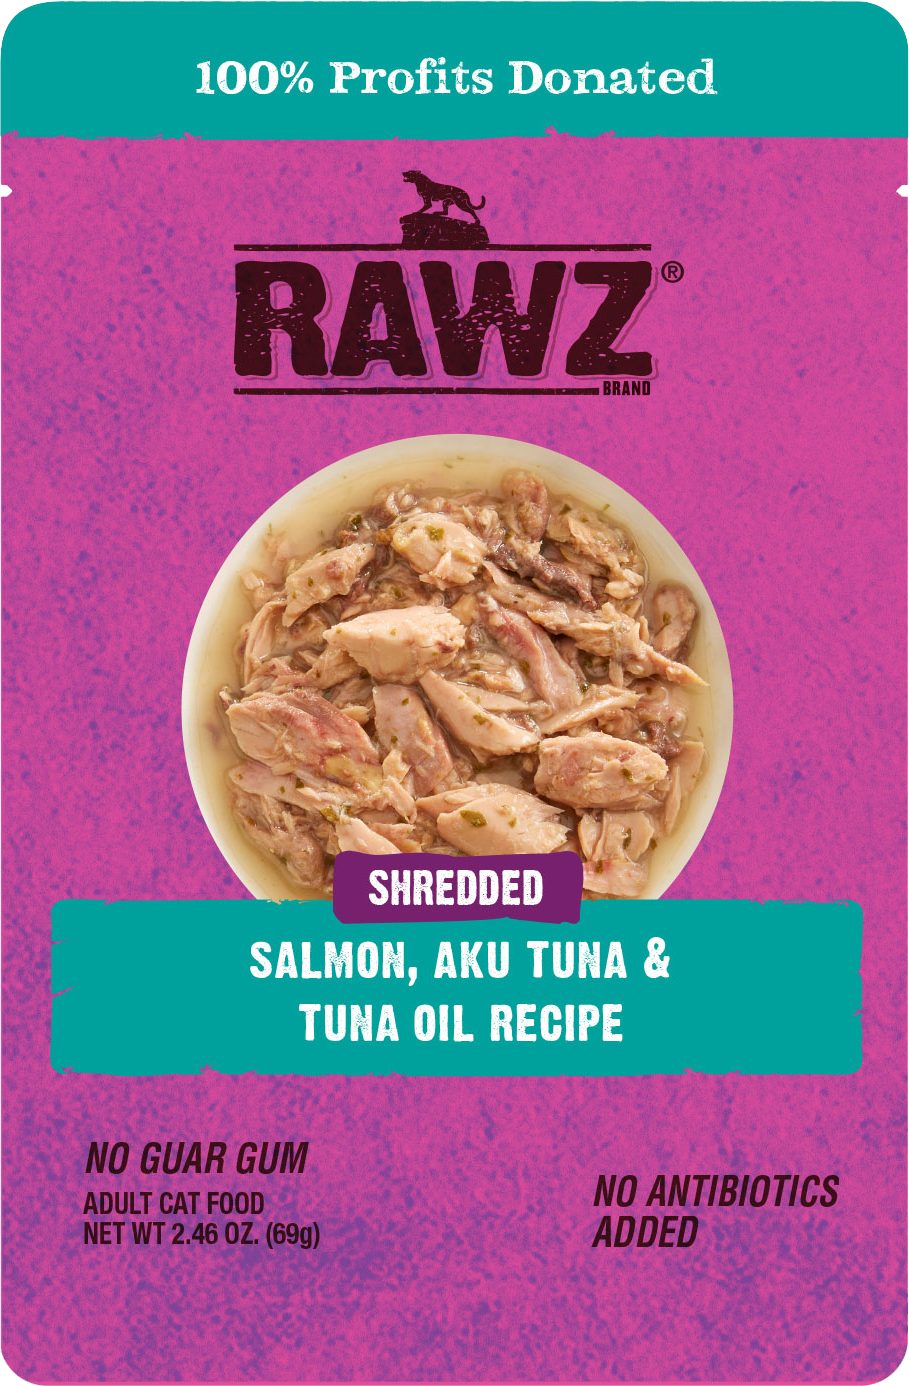 Shredded Salmon, Aku Tuna & Tuna Oil Recipe